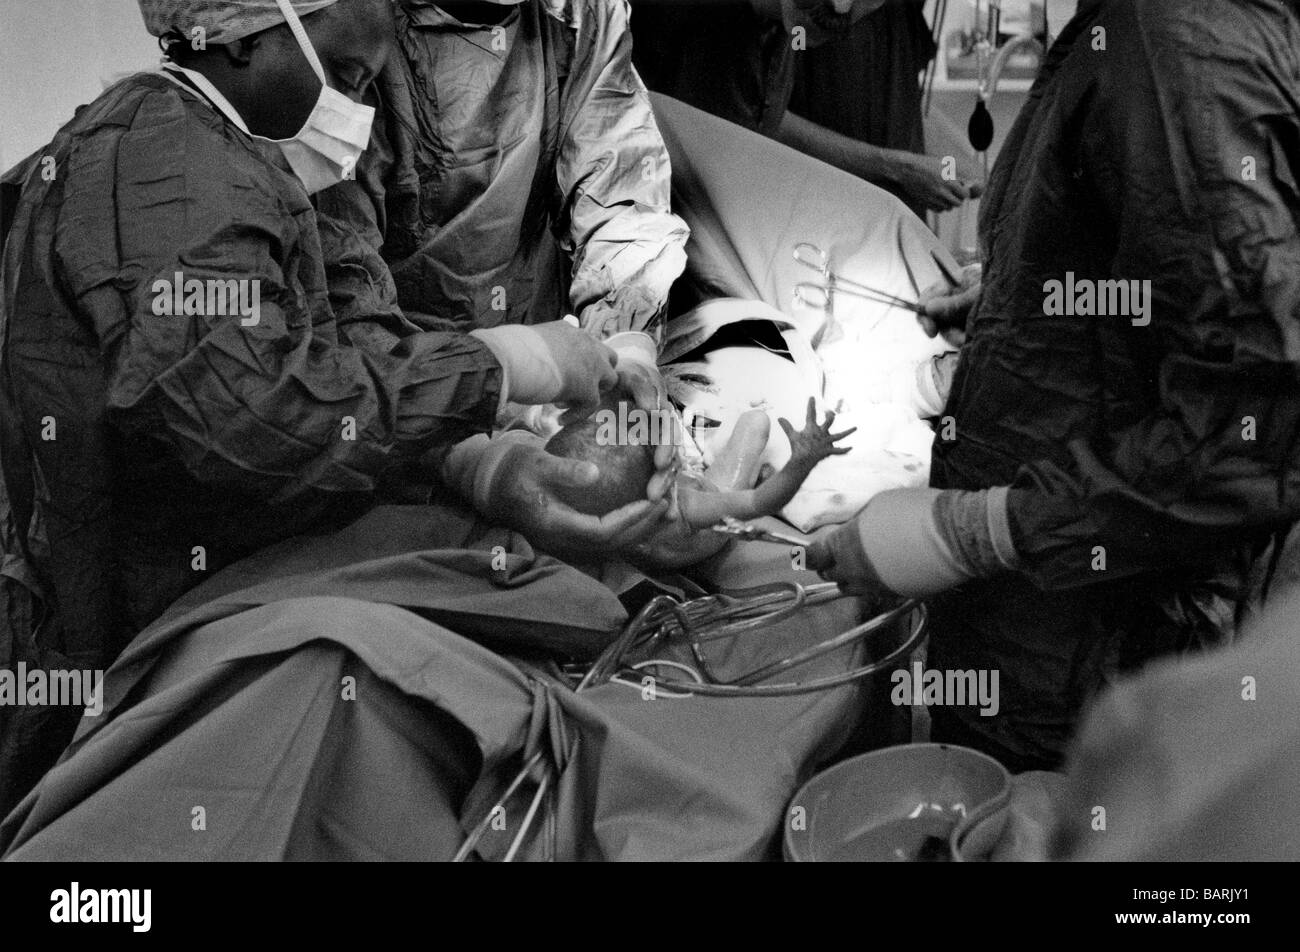 Operating Gown Black and White Stock Photos & Images - Alamy